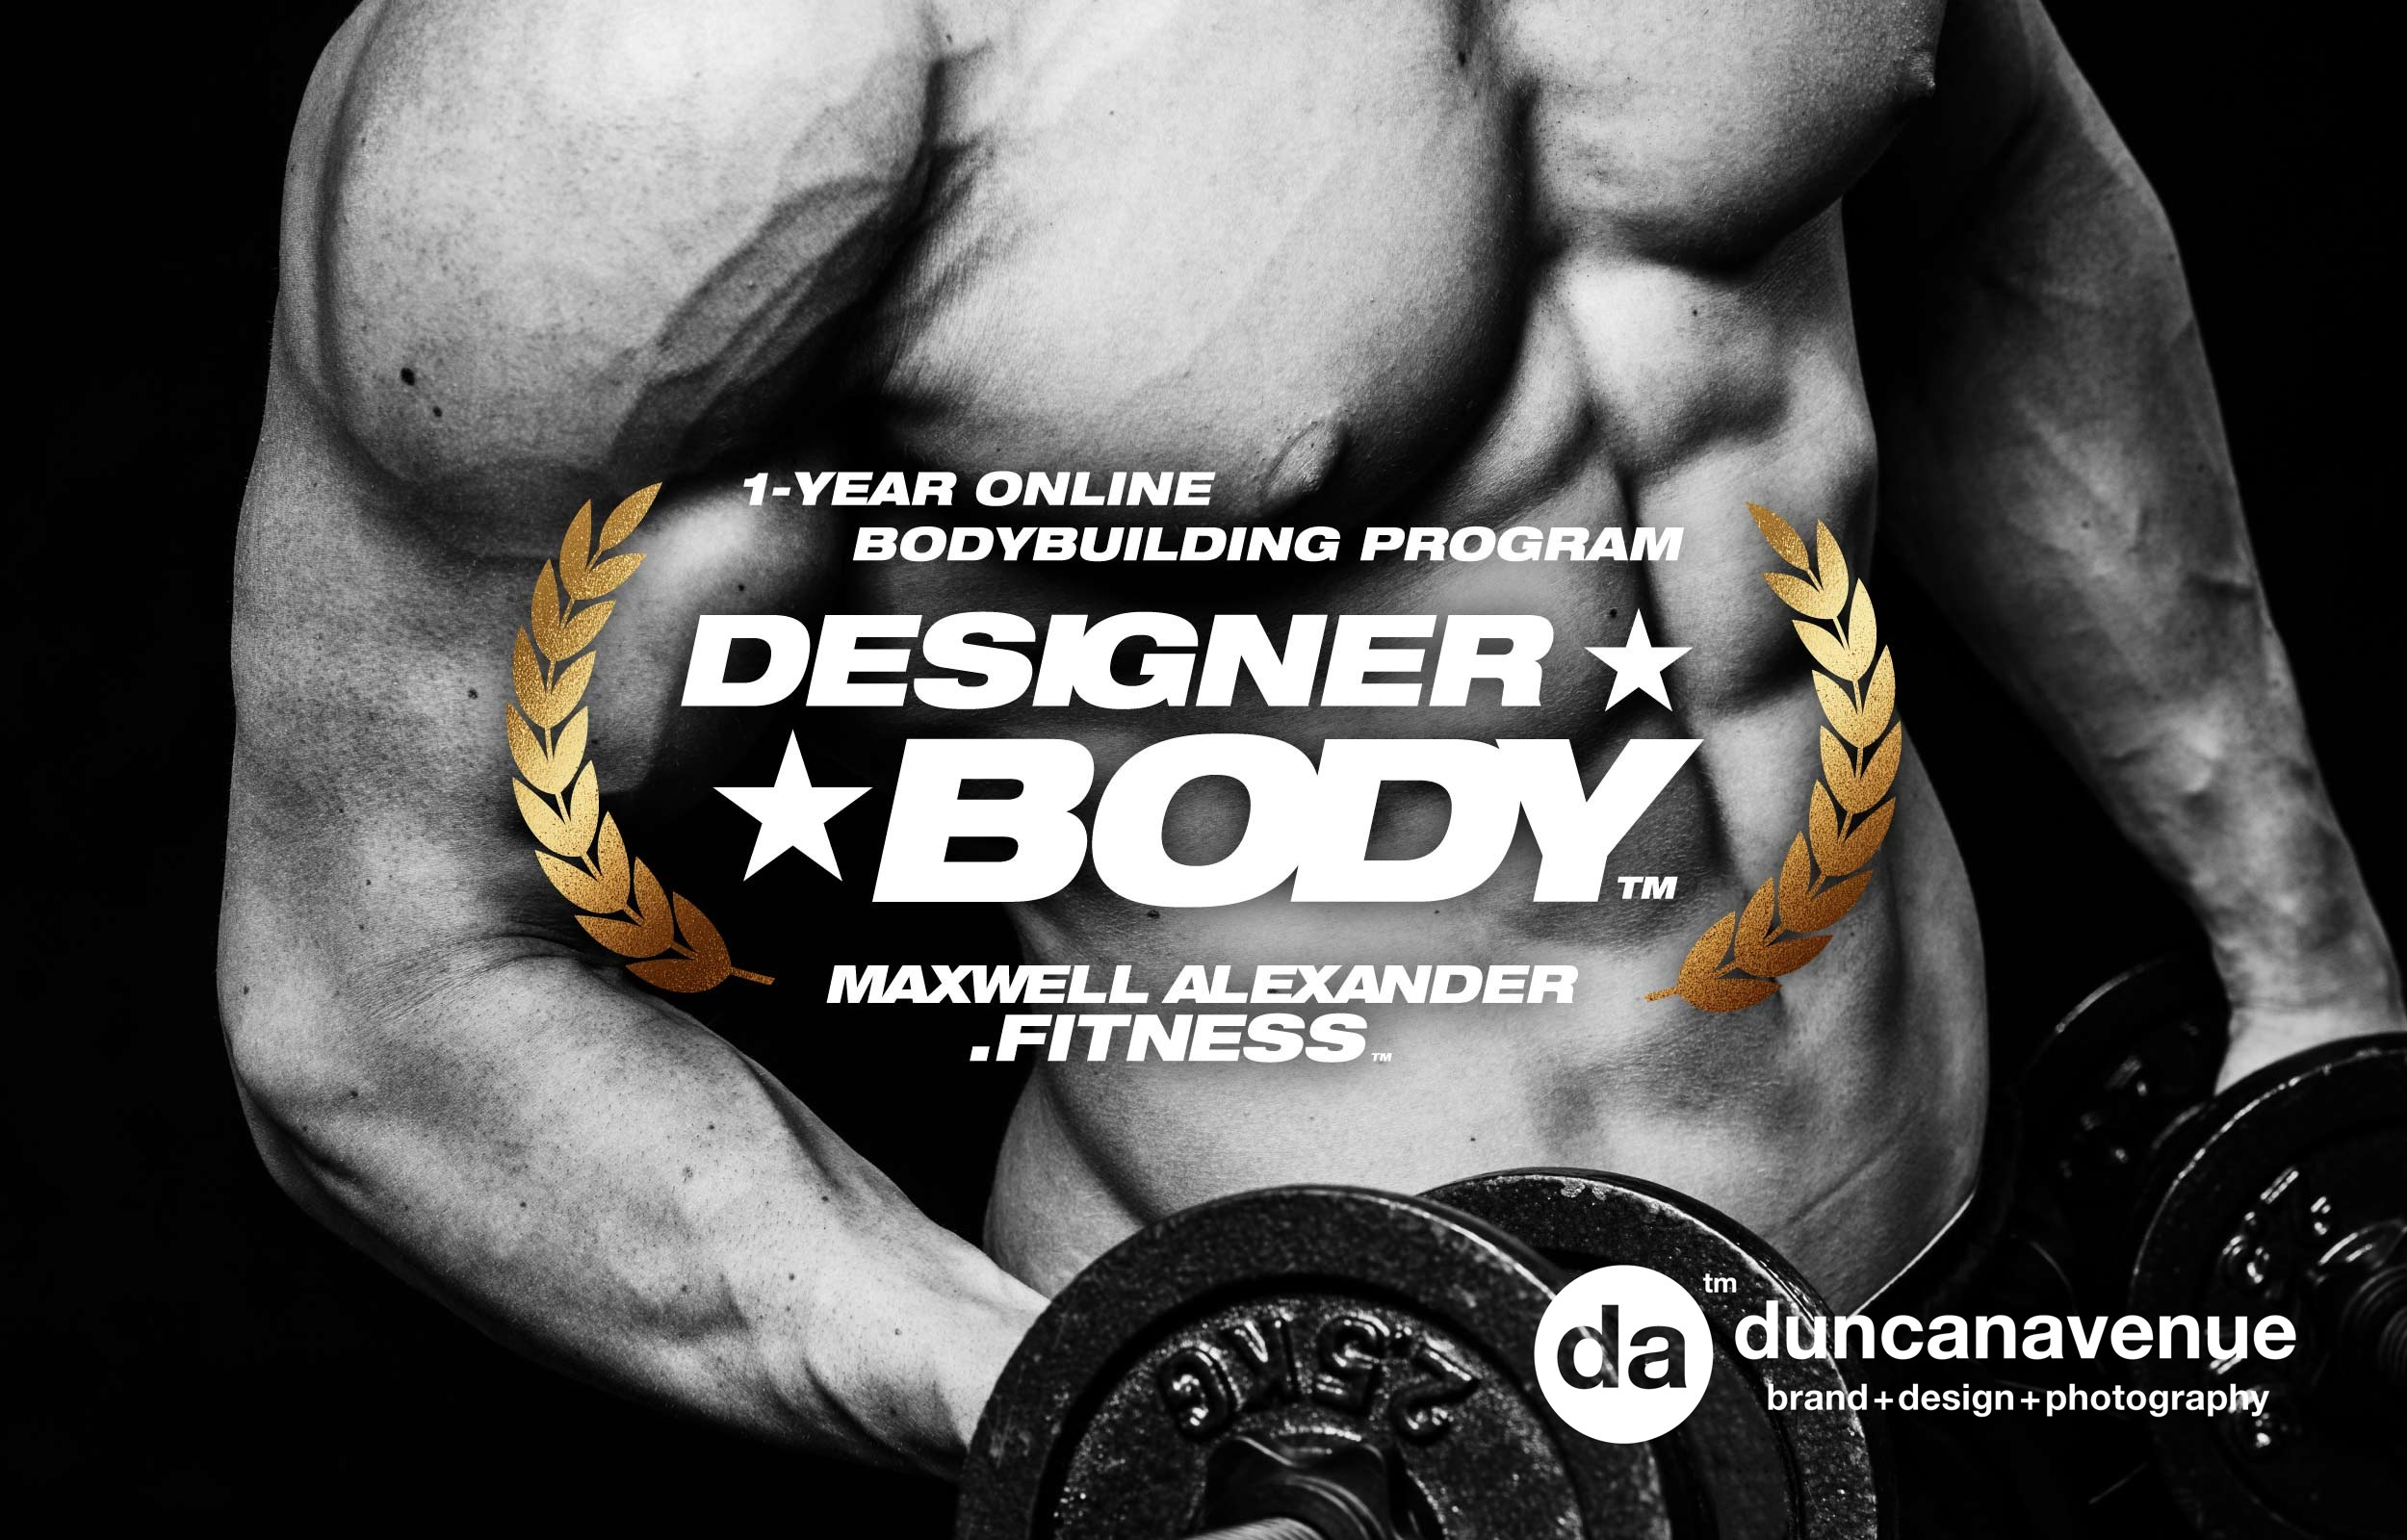 Designer Body™ Bodybuilding Program by Maxwell Alexander Fitness